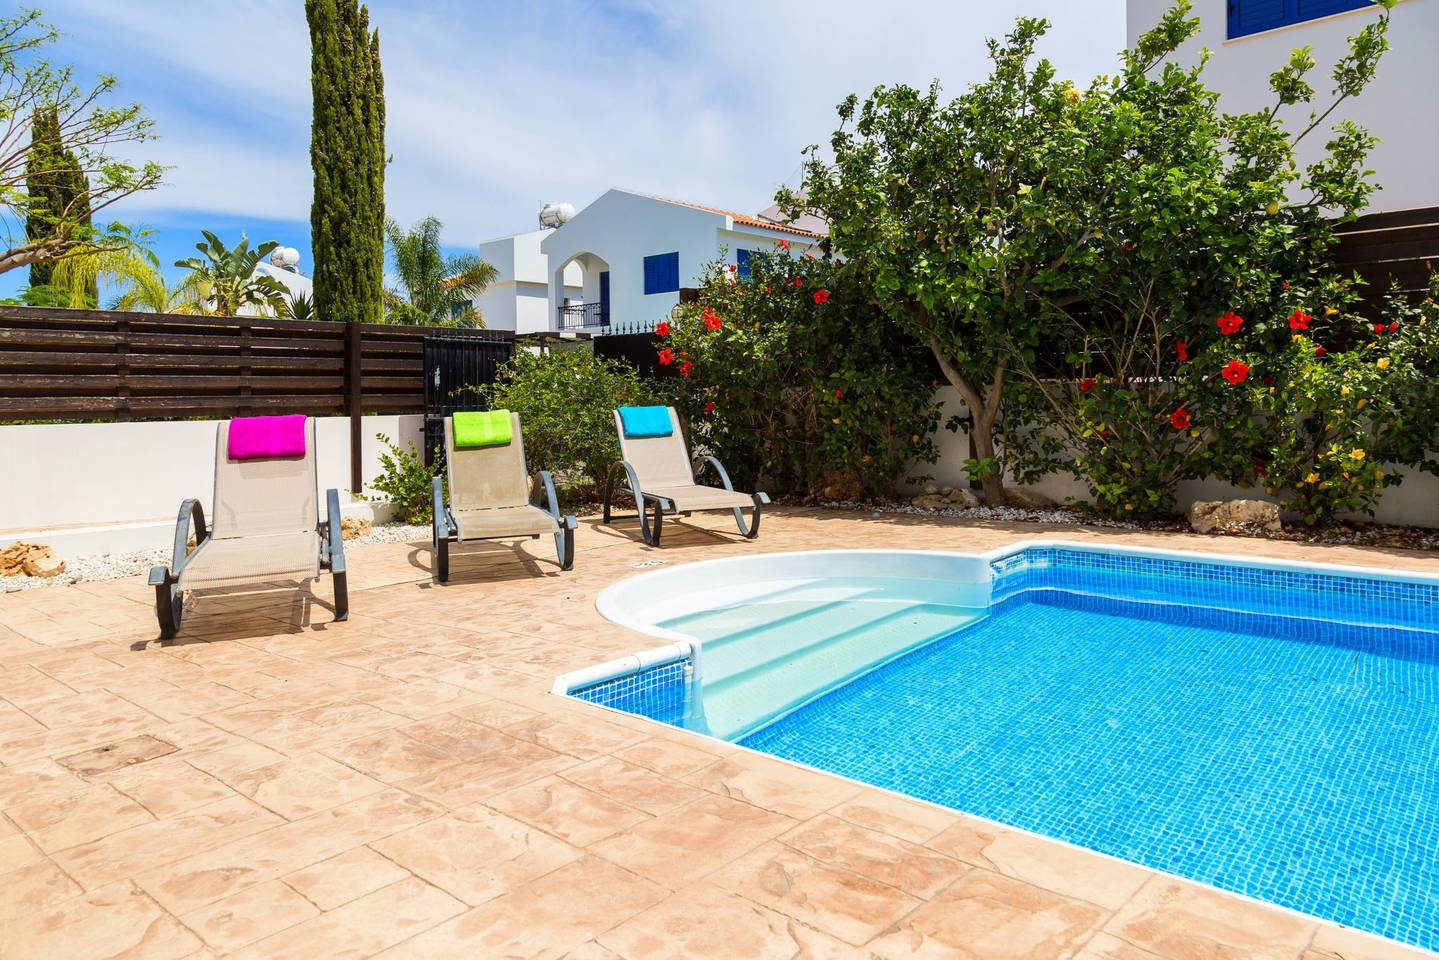 Apartment Villa Evace - 3 Bedroom Villa with Private Pool - 100m from Beach photo 18516348